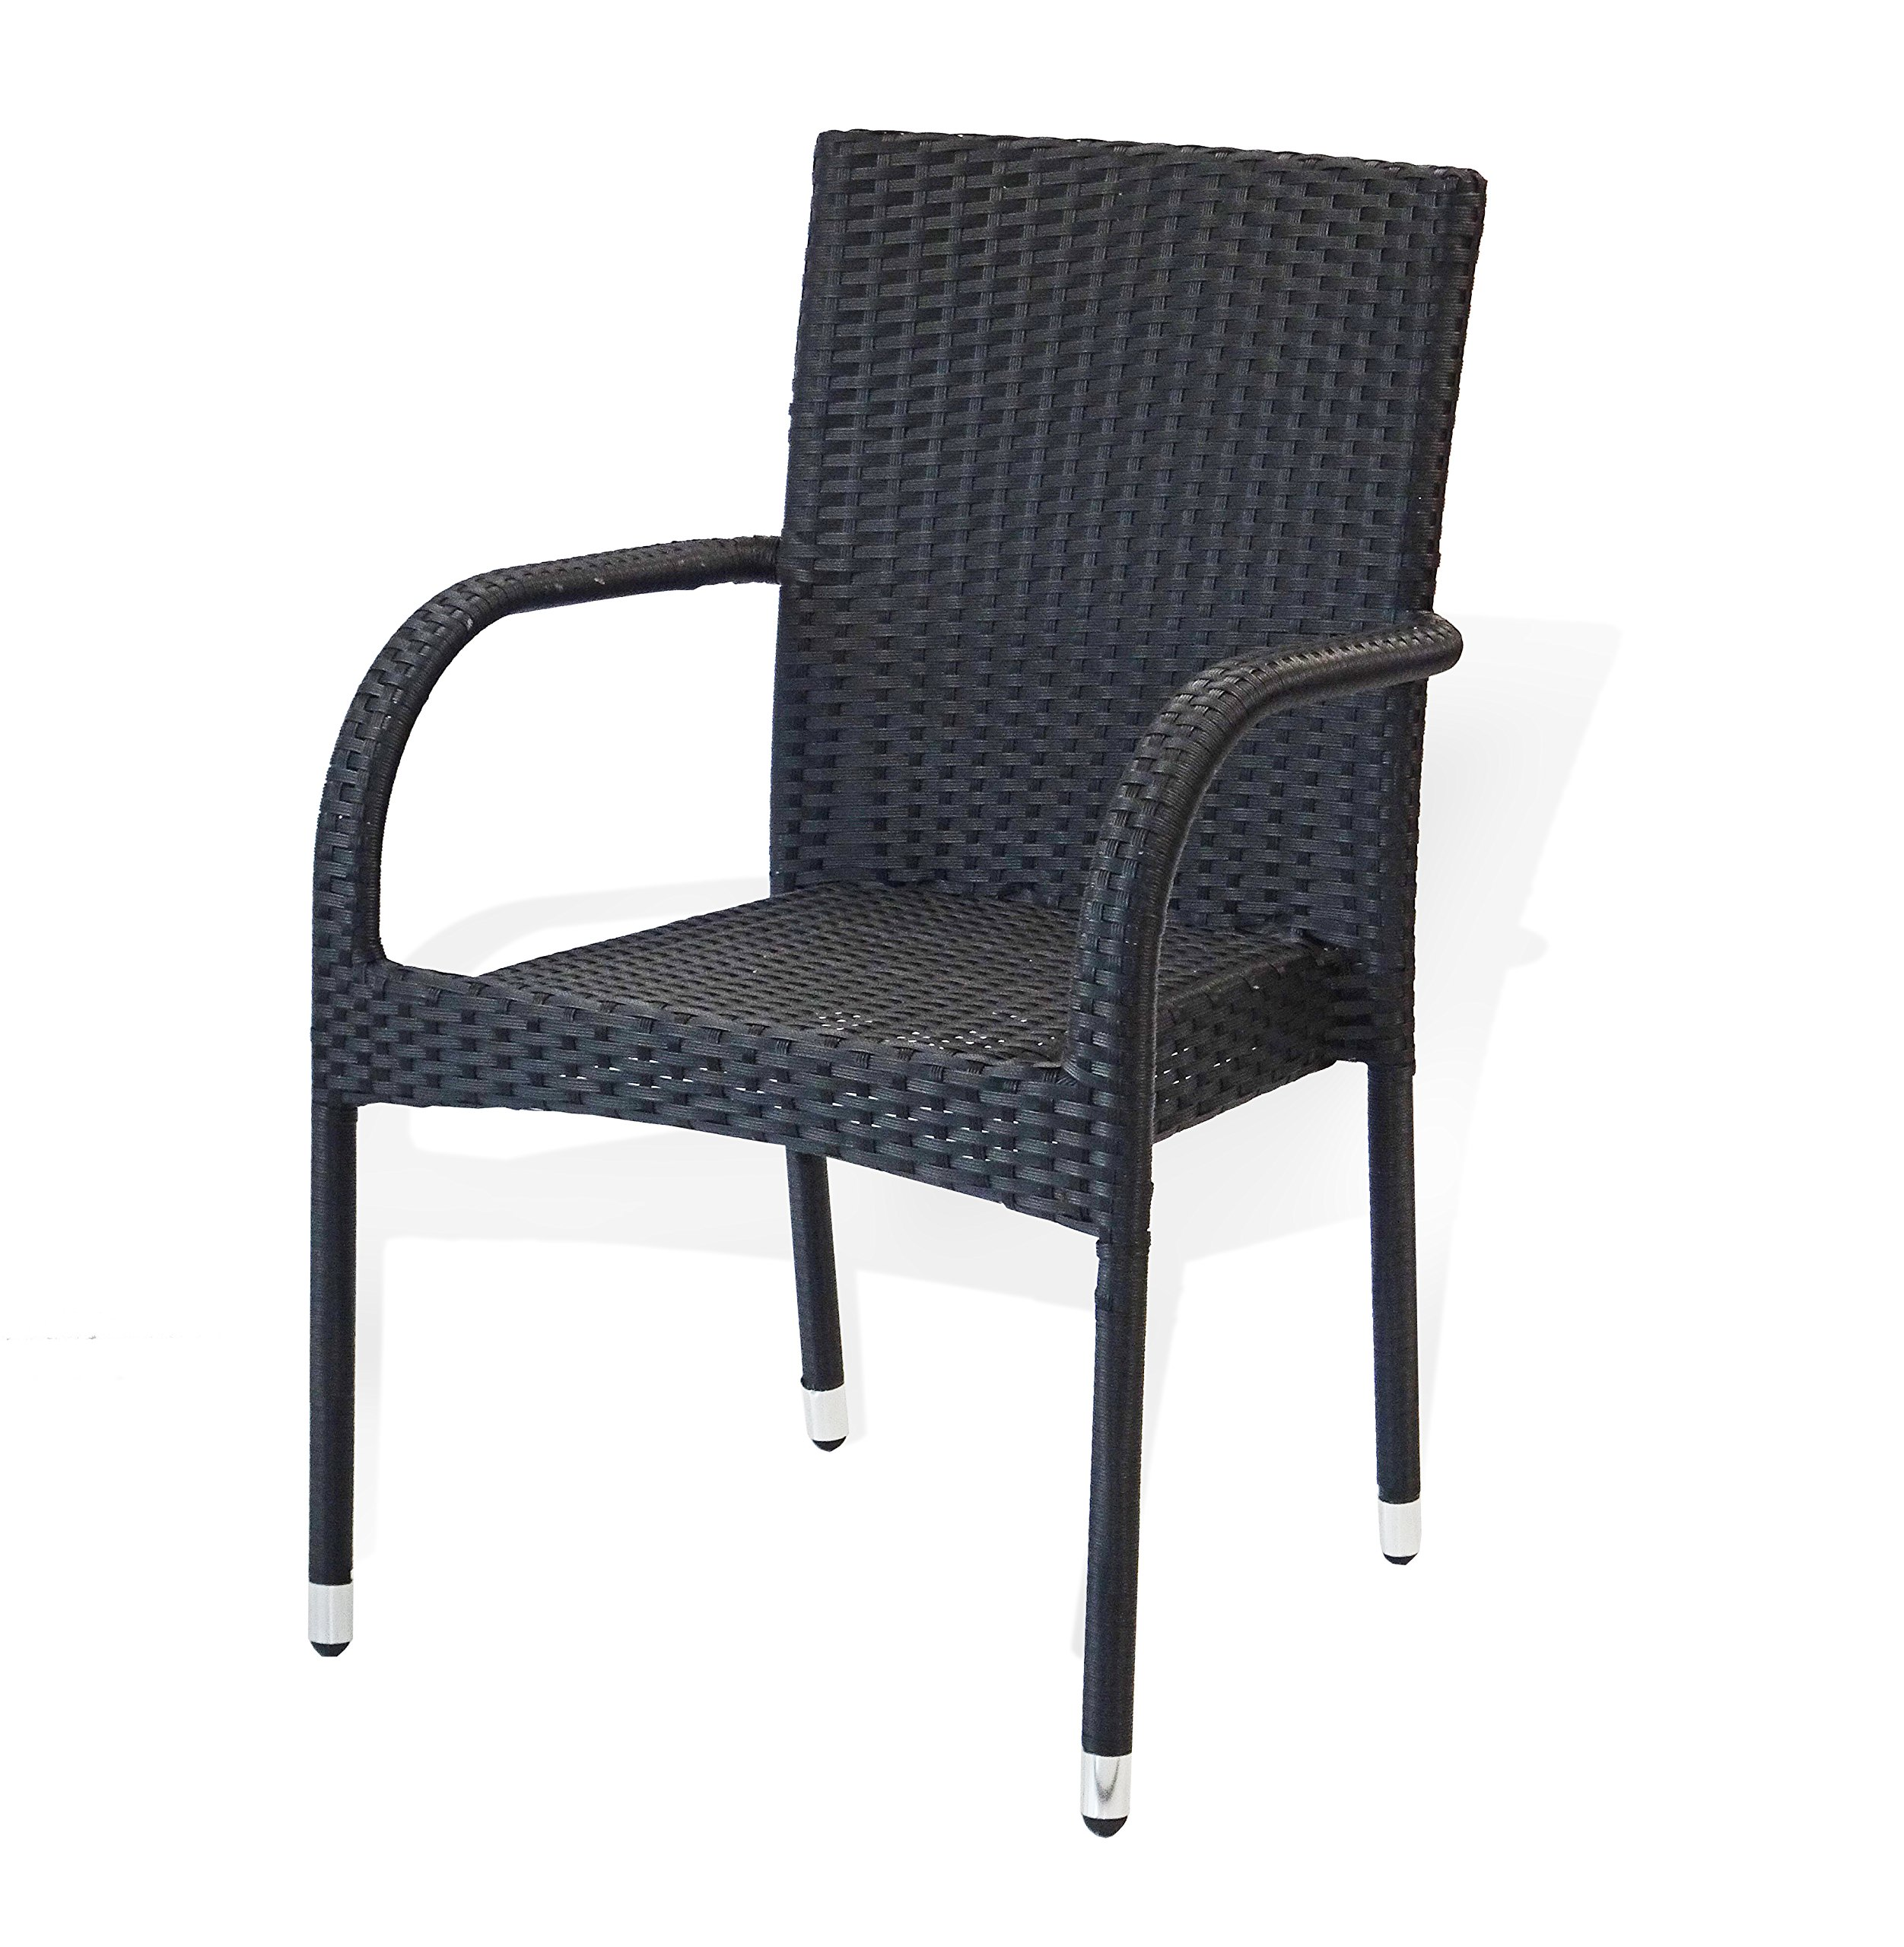 SunBear Furniture Patio Outdoor Armchair Garden Wicker Backyard Modern, Black